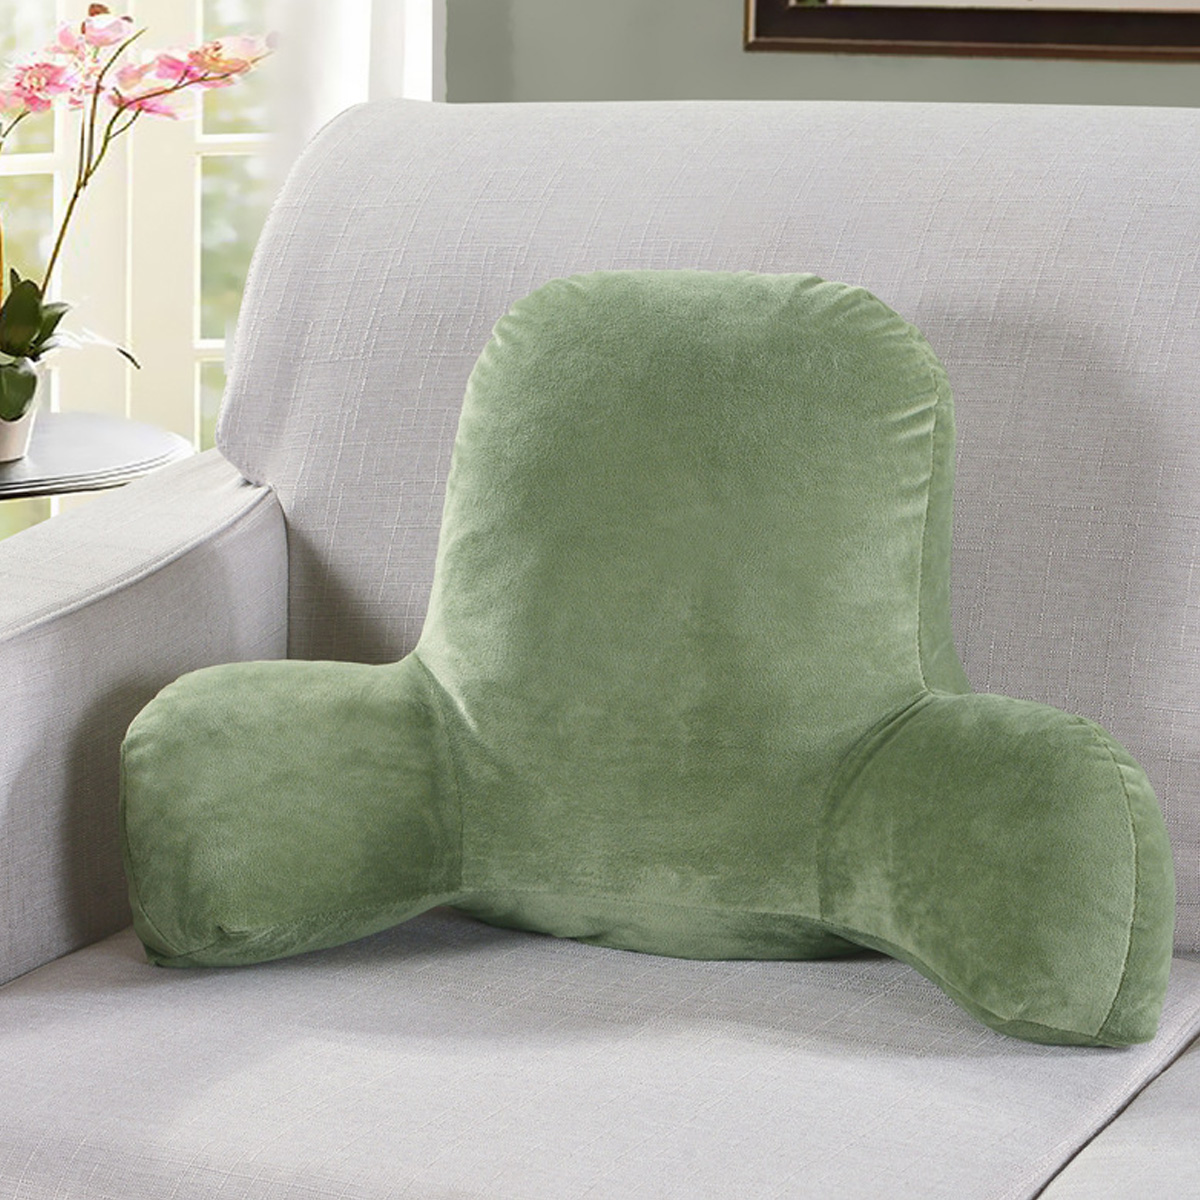 large plush backrest lumbar back reading pillow with arms support tv relax pillow sofa chair cushion for bed rest arm back